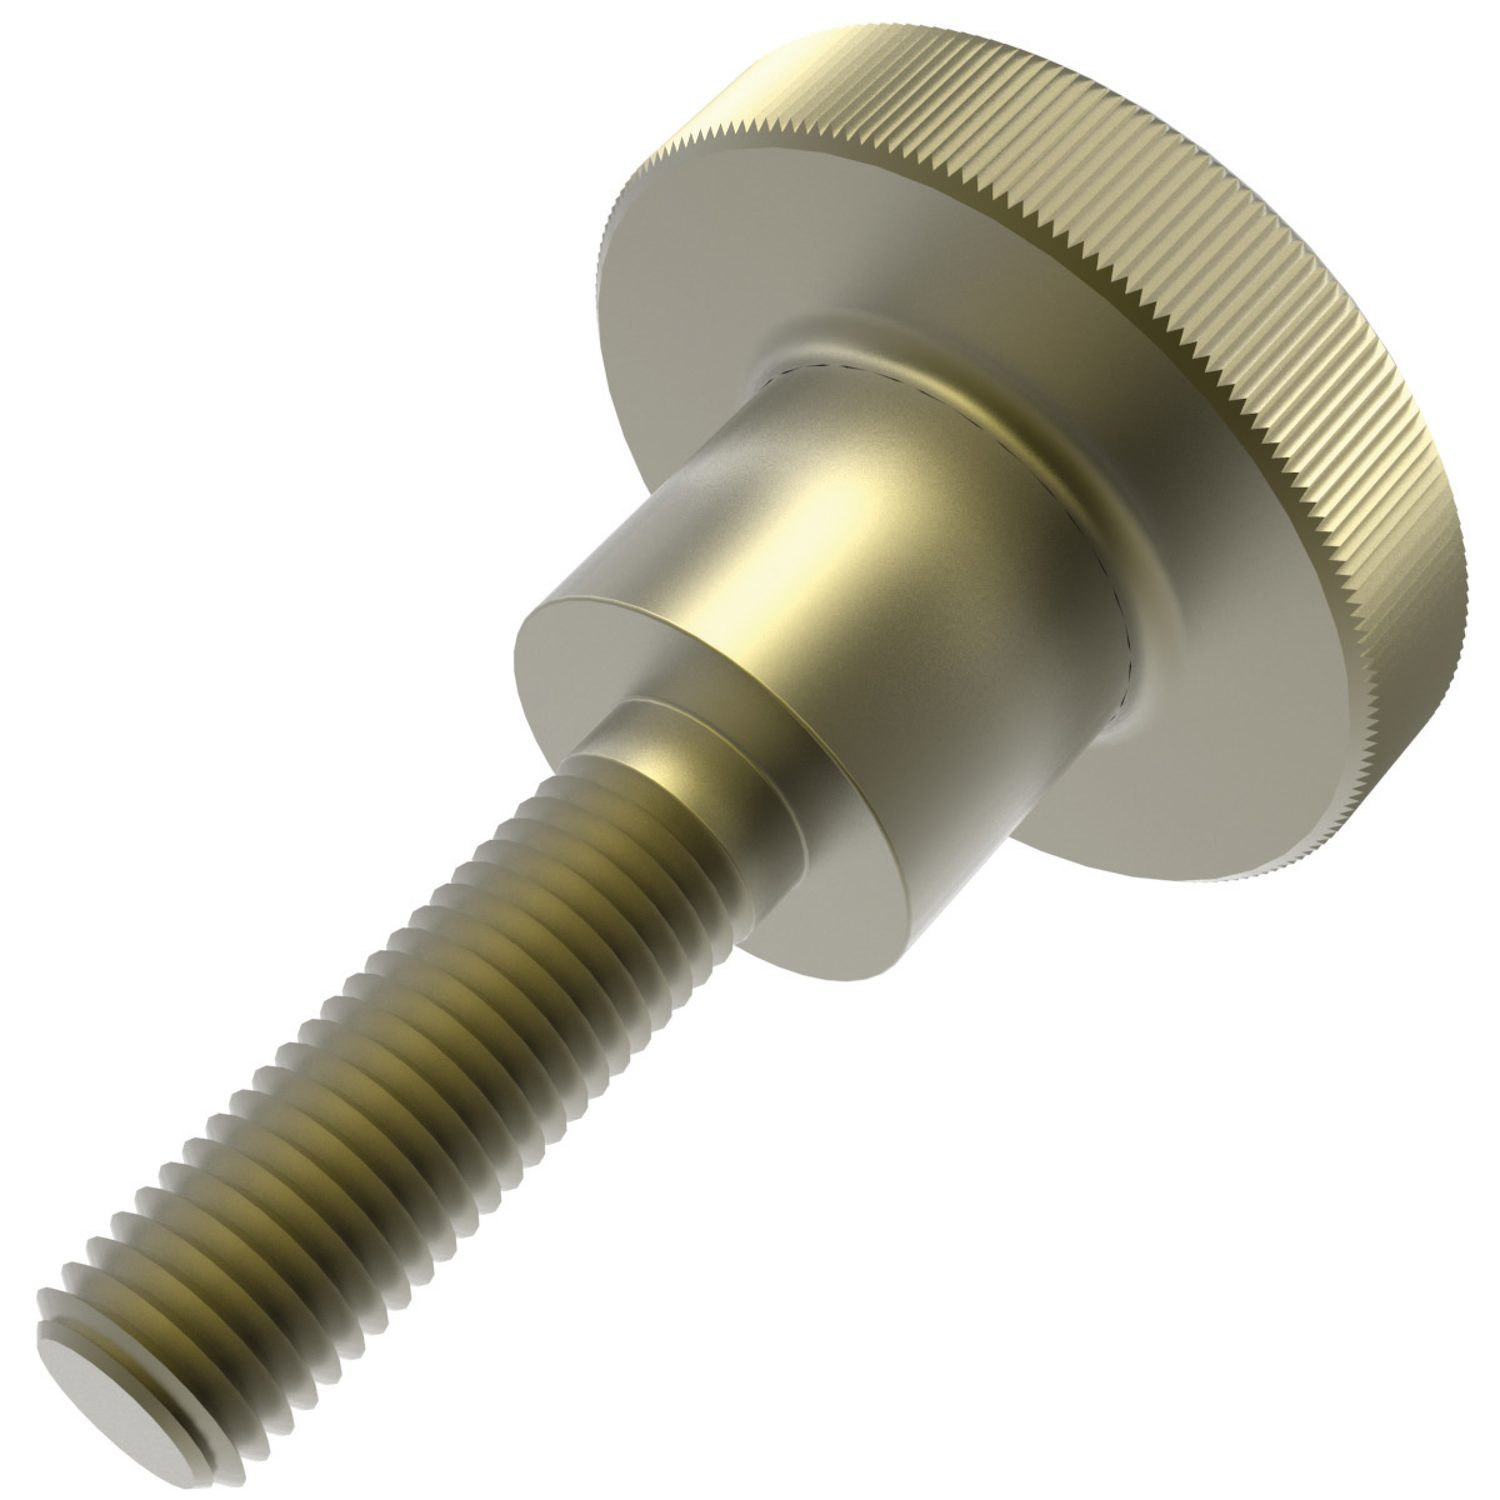 Brass Knurled Thumb Screws Brass thumb screws manufactured to DIN 464. Available in two variations, flat and knurled.